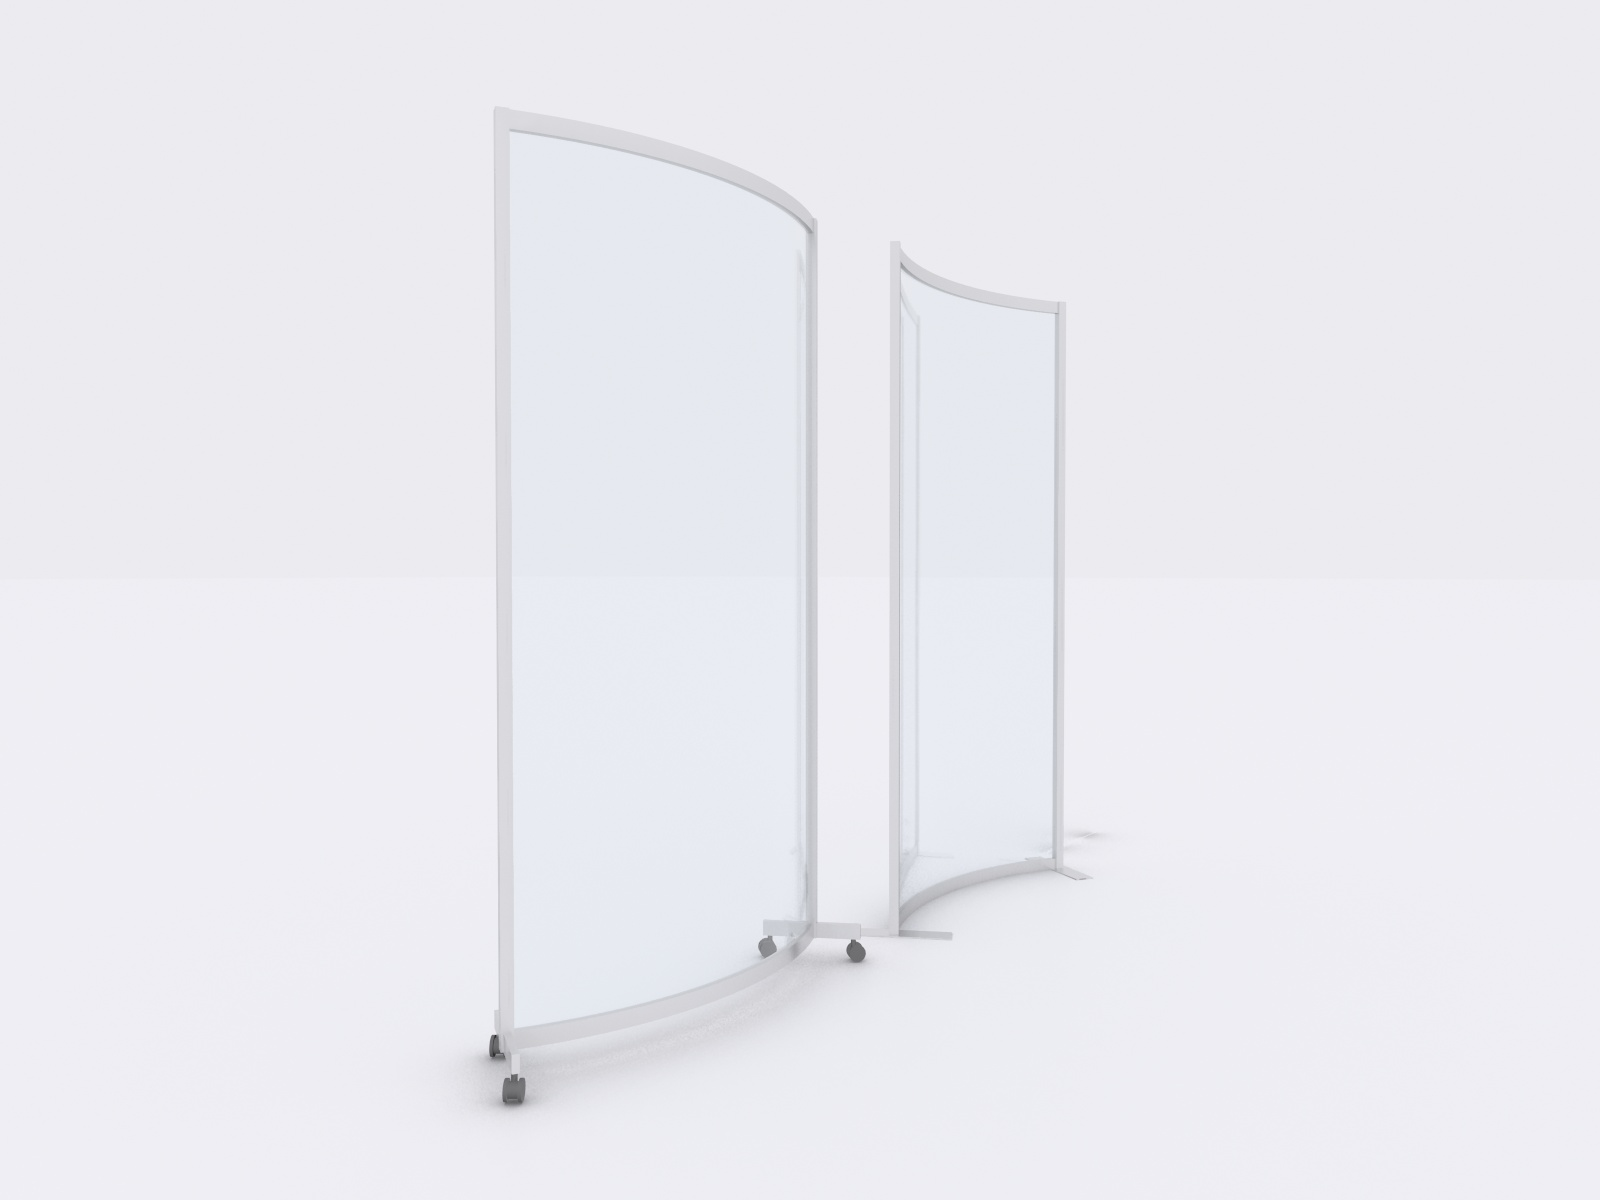 MOD-8016 and MOD-8017 Safety Dividers -- Image 1